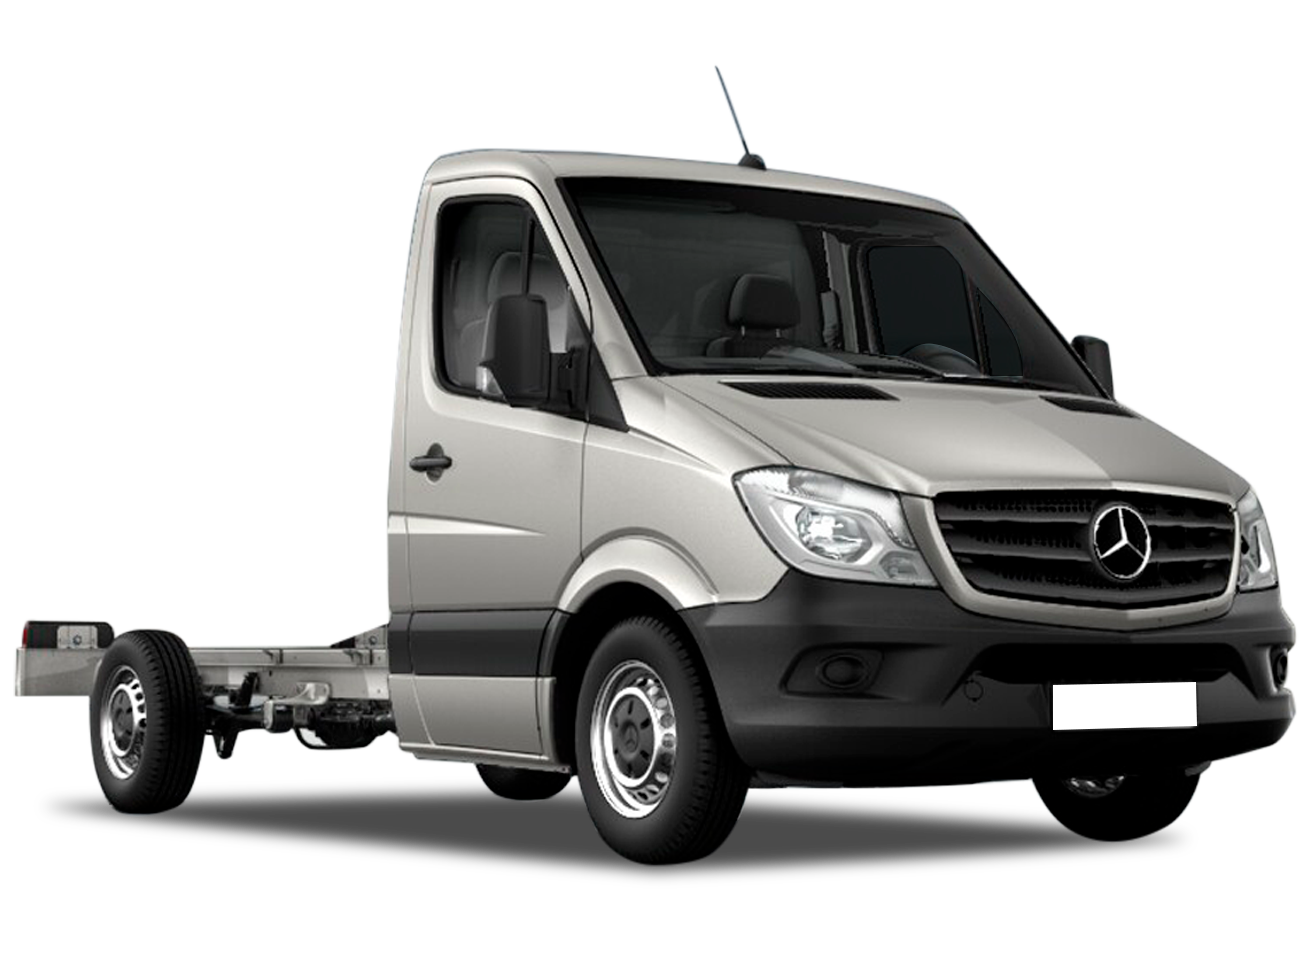 MERCEDES-BENZ - SPRINTER - 2.2 CDI DIESEL CHASSIS 415 LONGO MANUAL